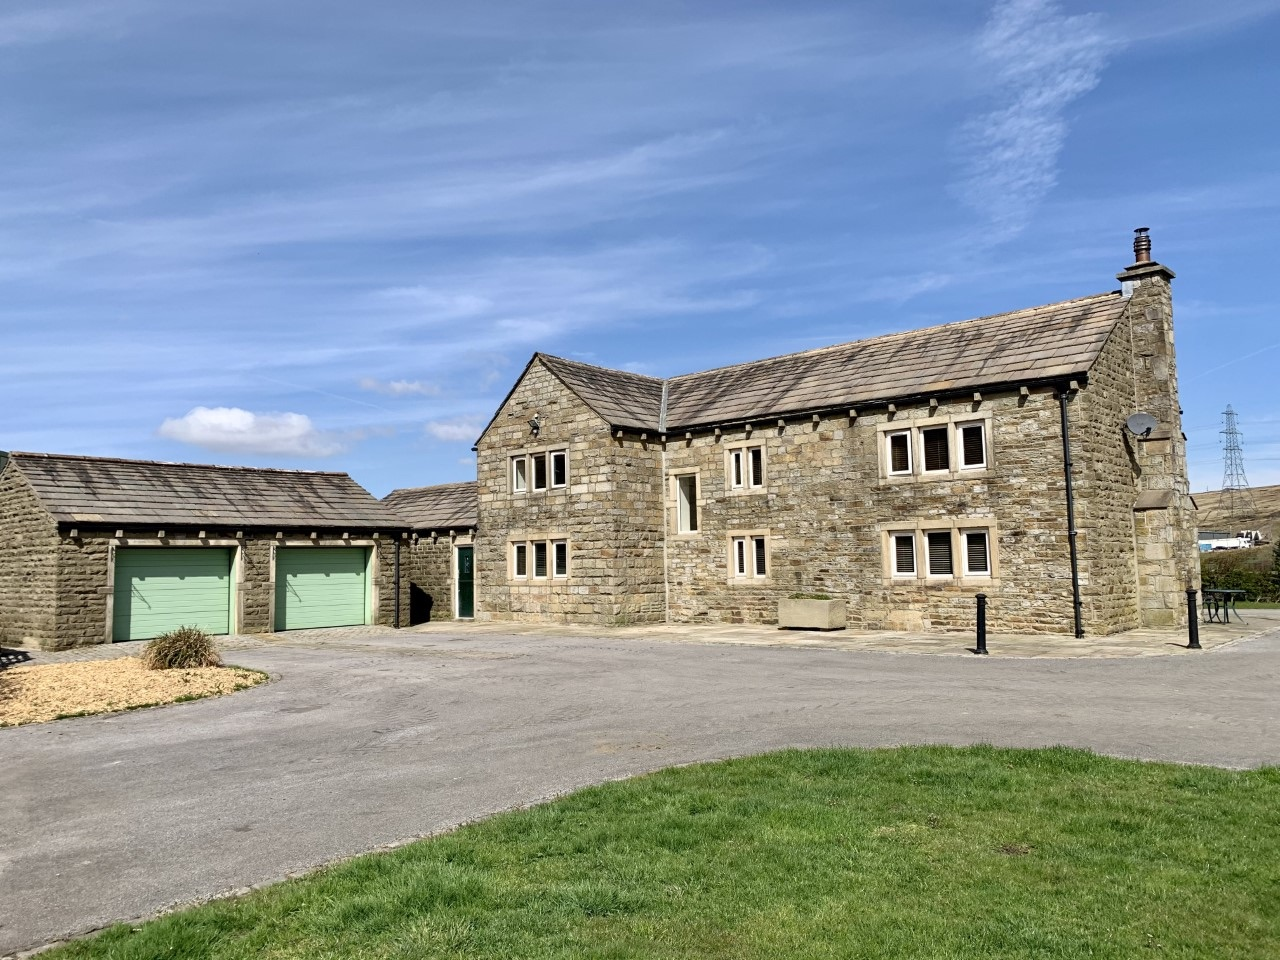 3 bedroom detached house For Sale in Todmorden - Photograph 5.